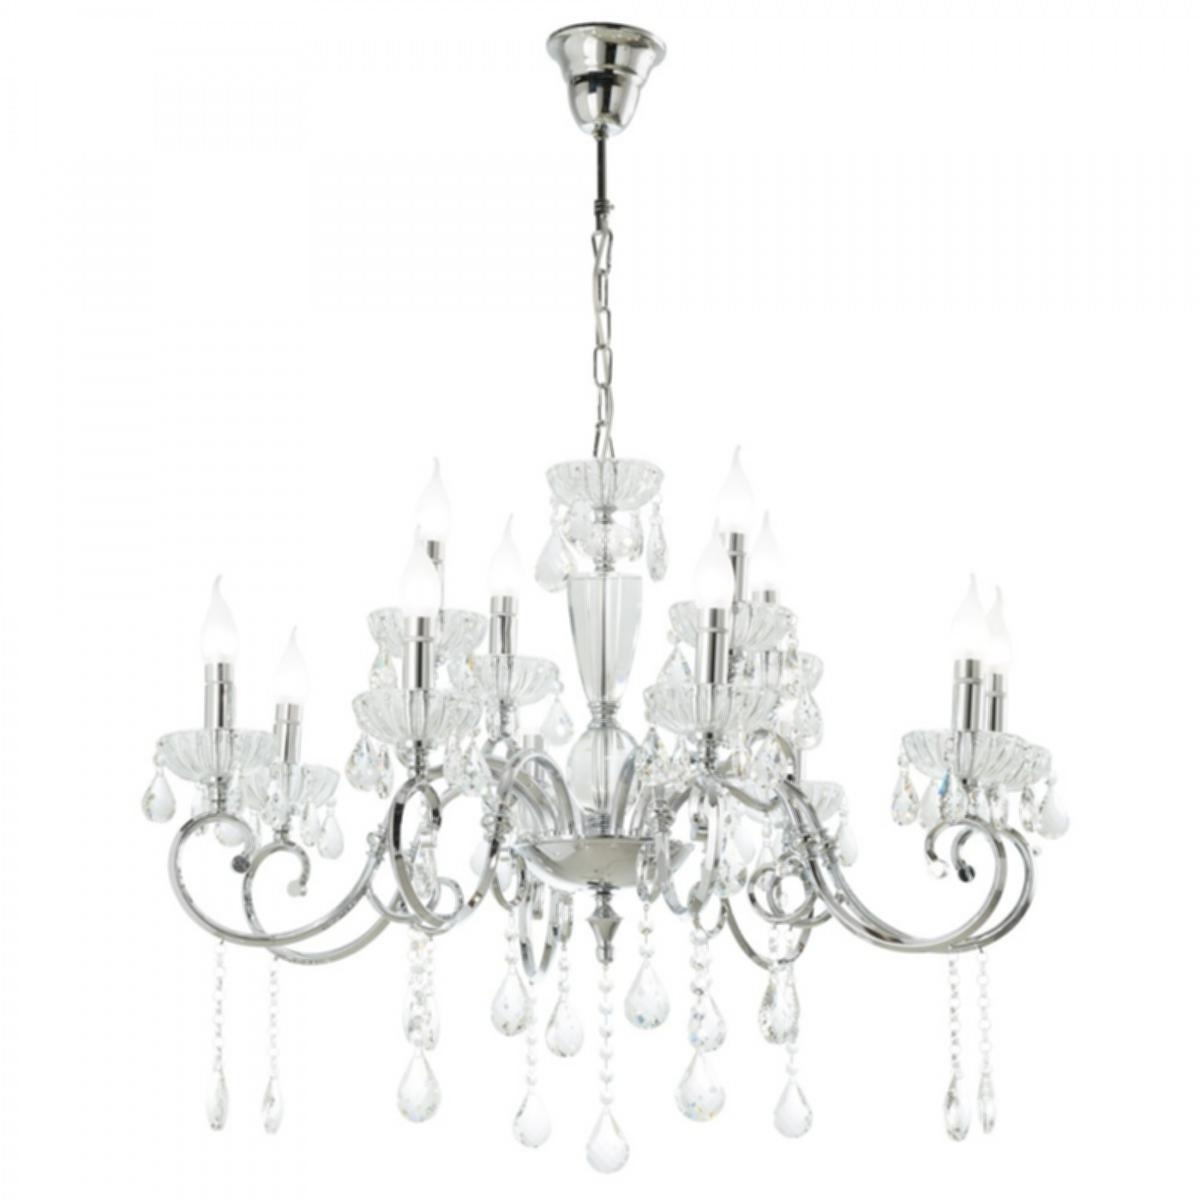 Home Design For Chandelier Accessories (View 9 of 15)